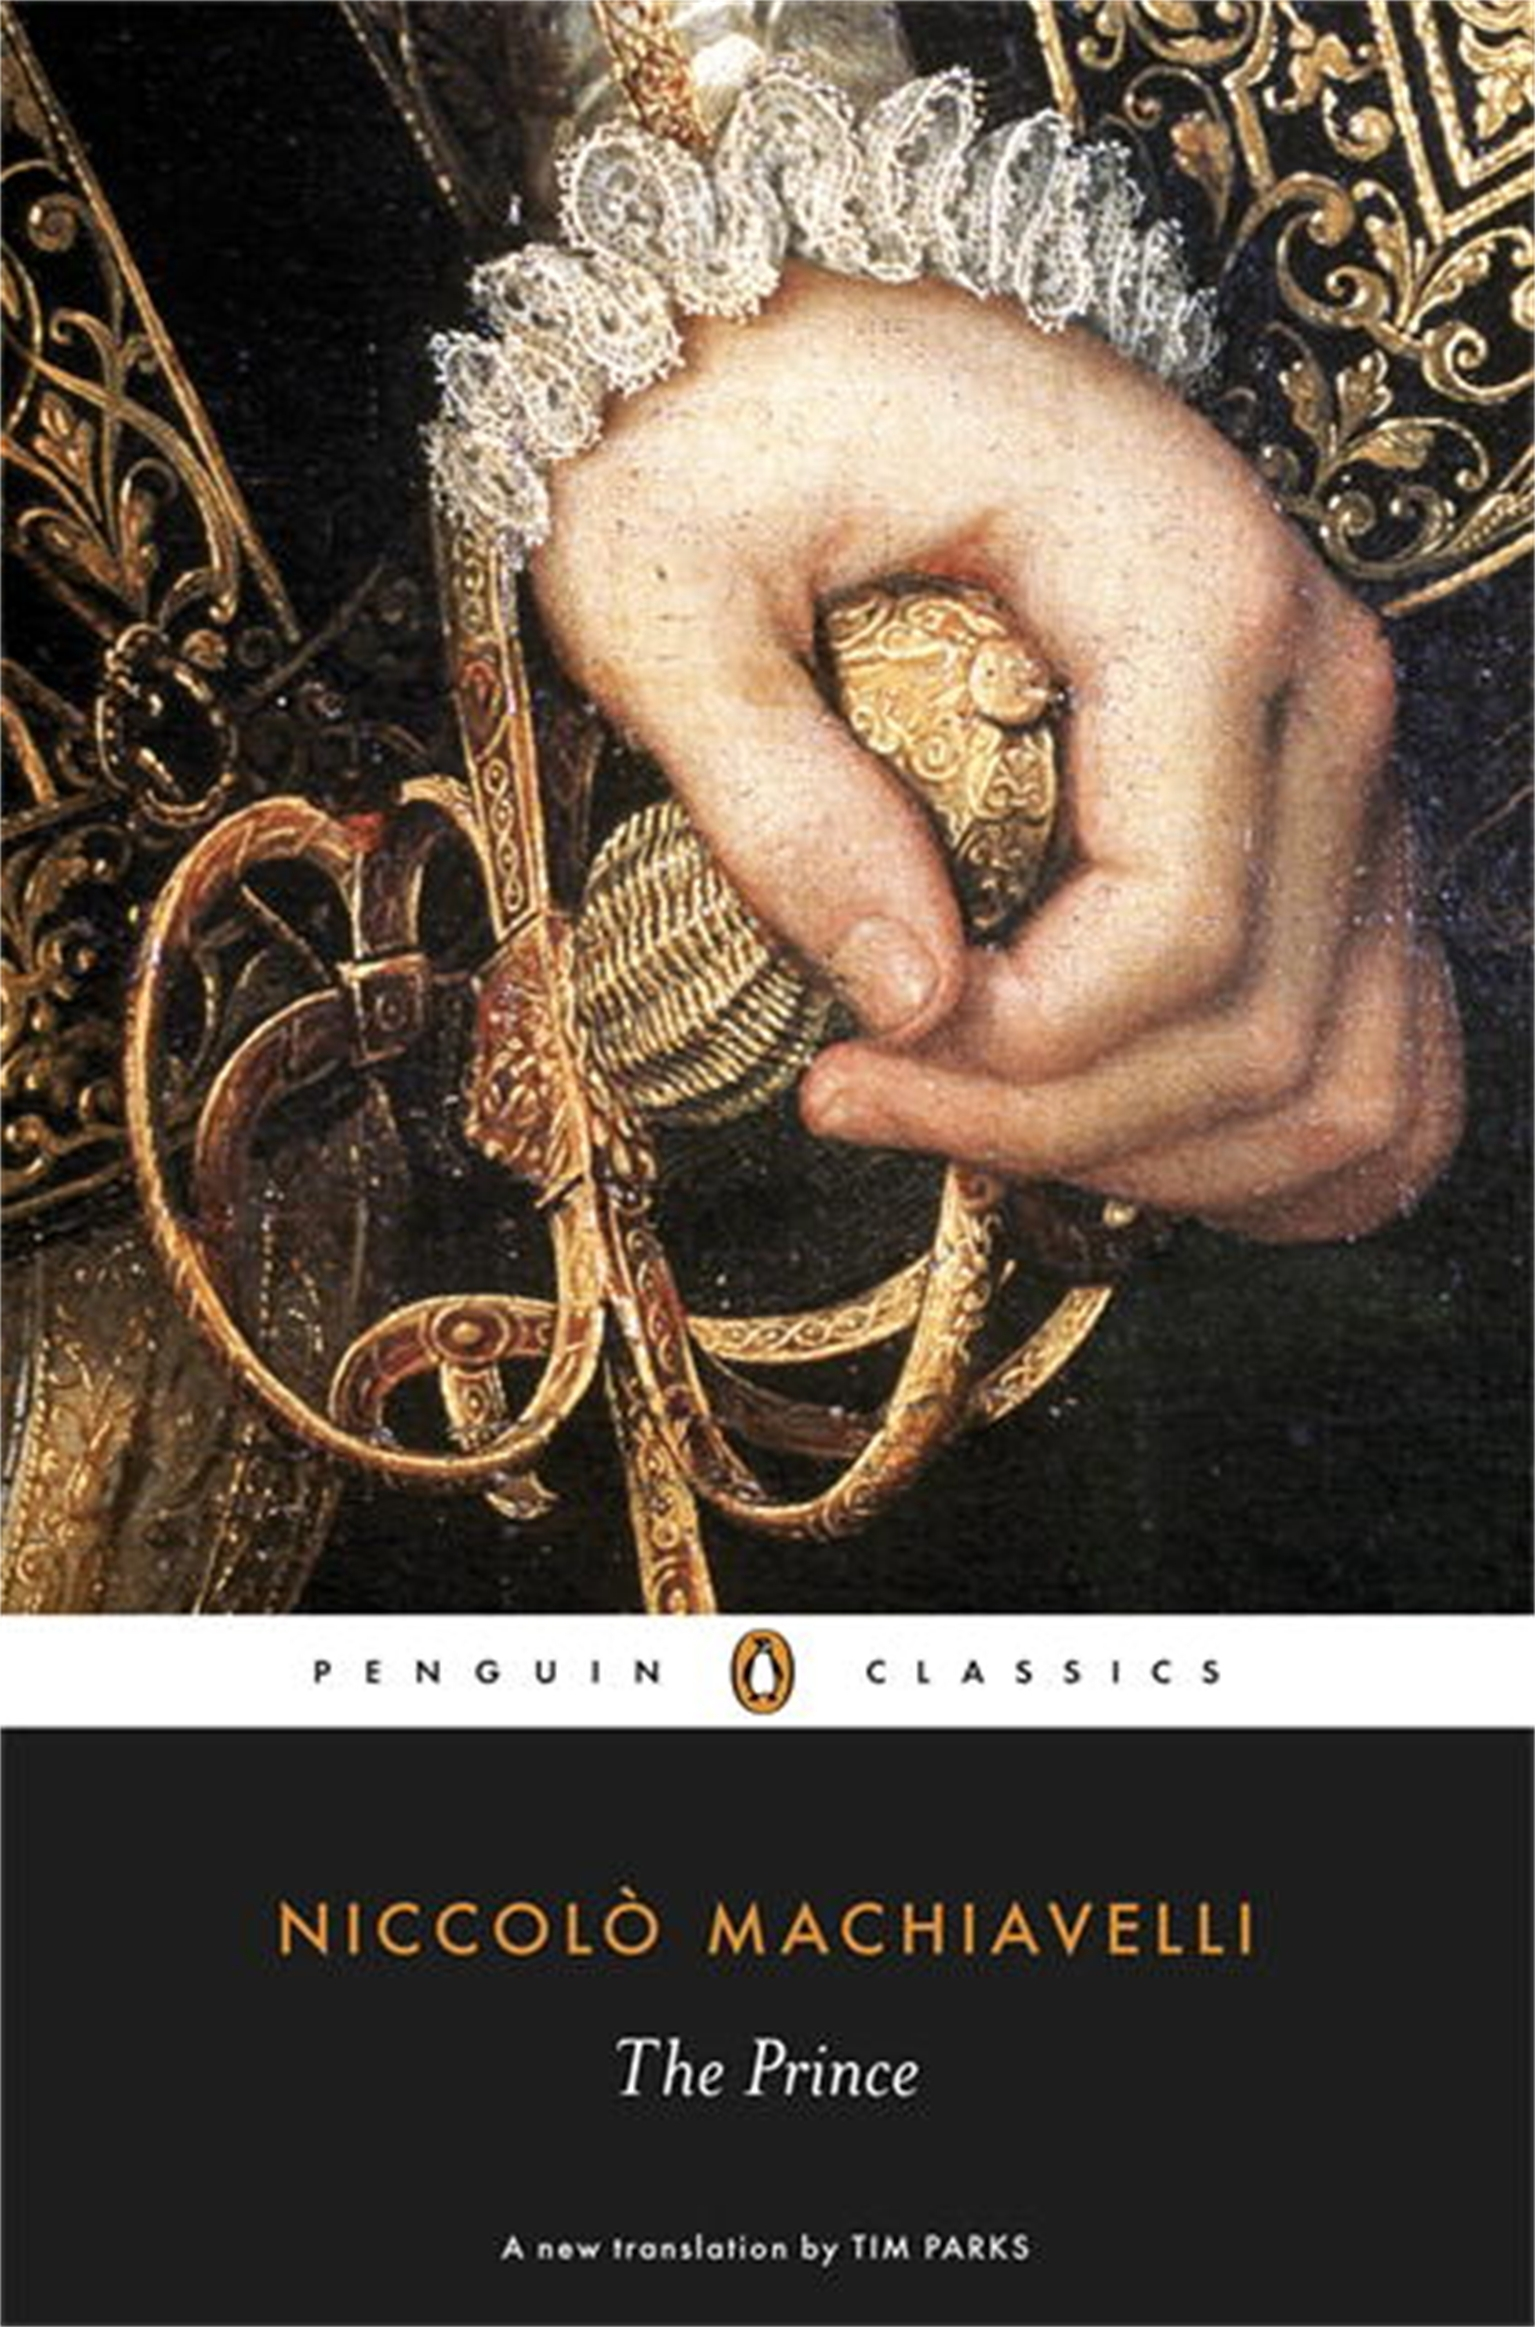 the art of holding power in the prince a book by niccolo machiavelli The prince is the most controversial book about winning power - and holding on to it - ever written machiavelli's tough-minded, pragmatic argument that sometimes it is necessary to abandon ethics to succeed made his name notorious.